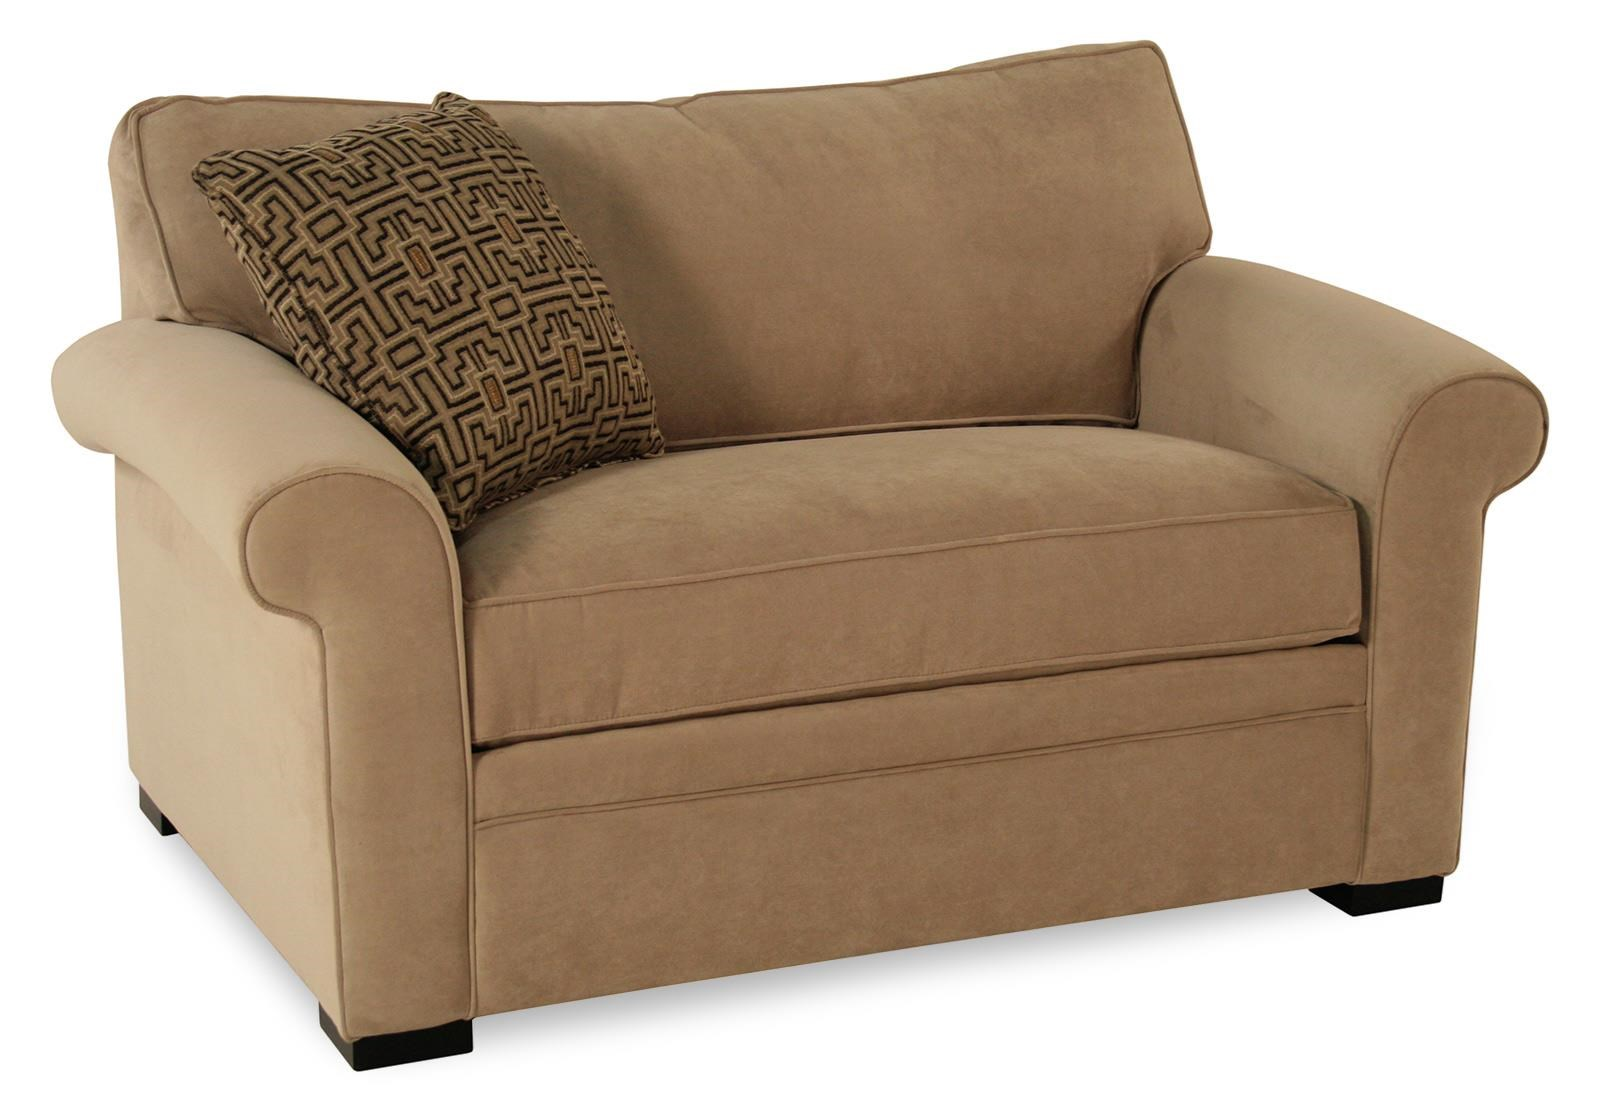 jonathan louis sofa bed slipcovered sectionals sofas caprice chair rotmans sleeper